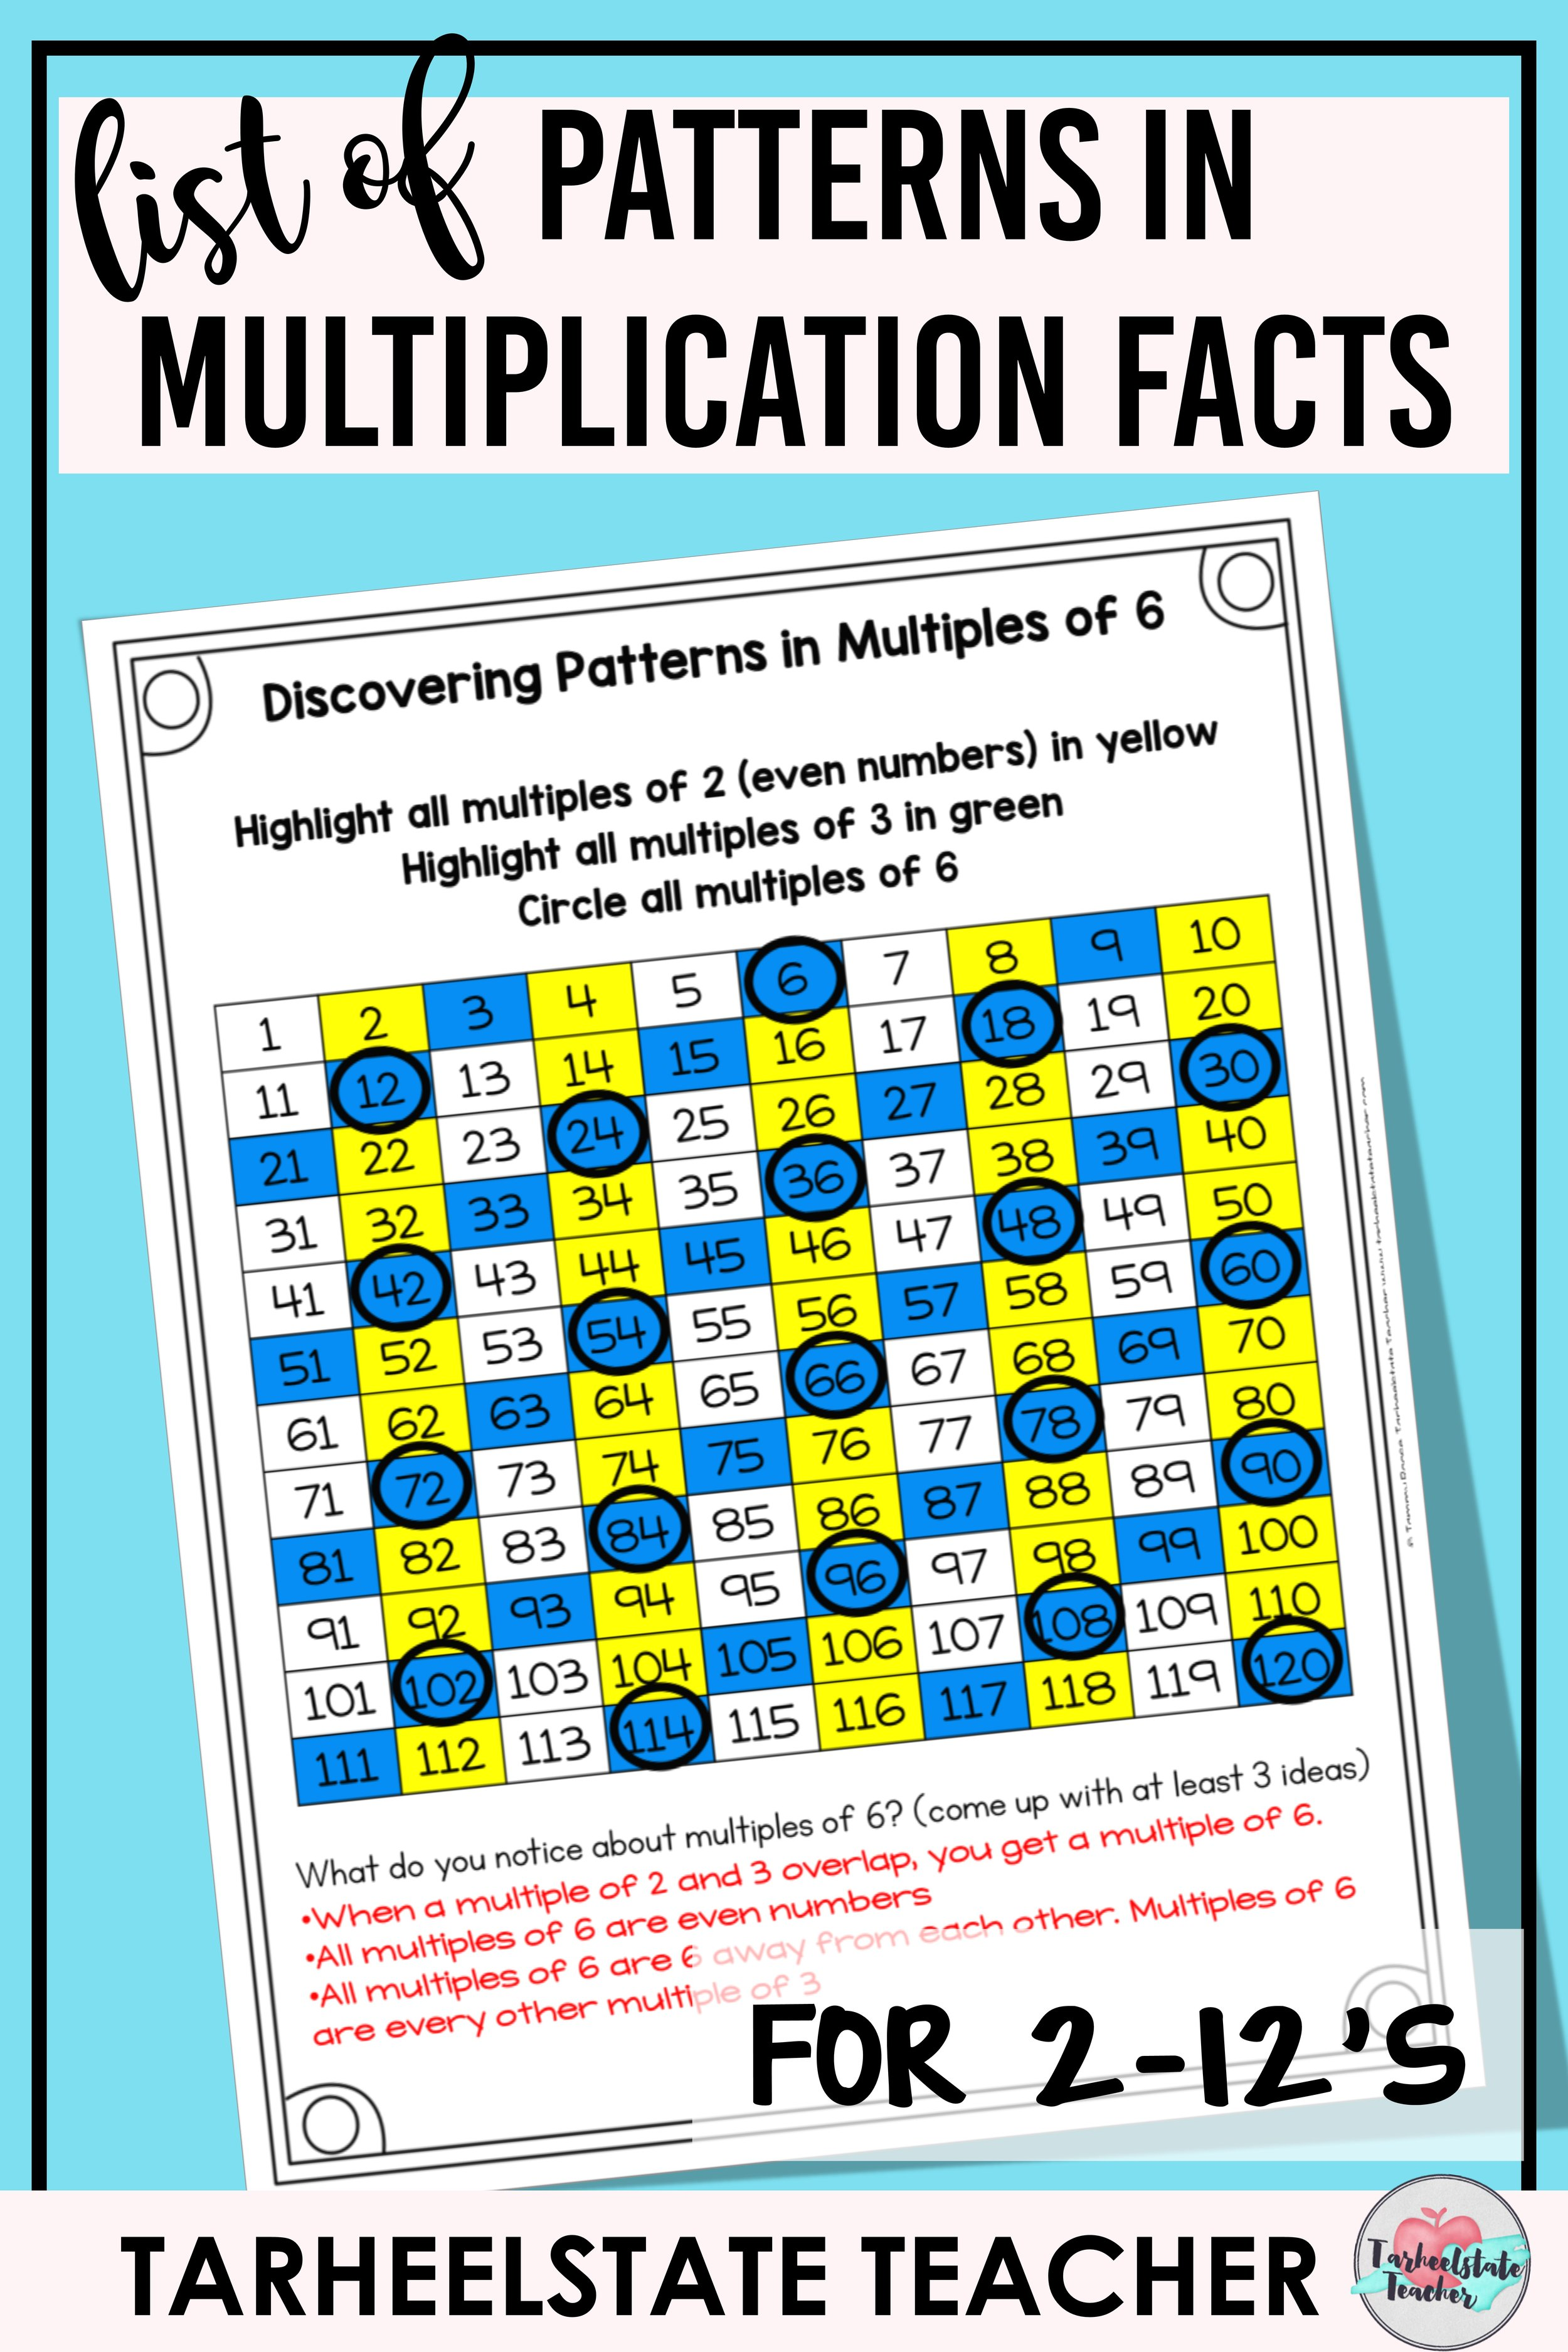 PATTERNS IN MULTIPLICATION FACTS.jpg